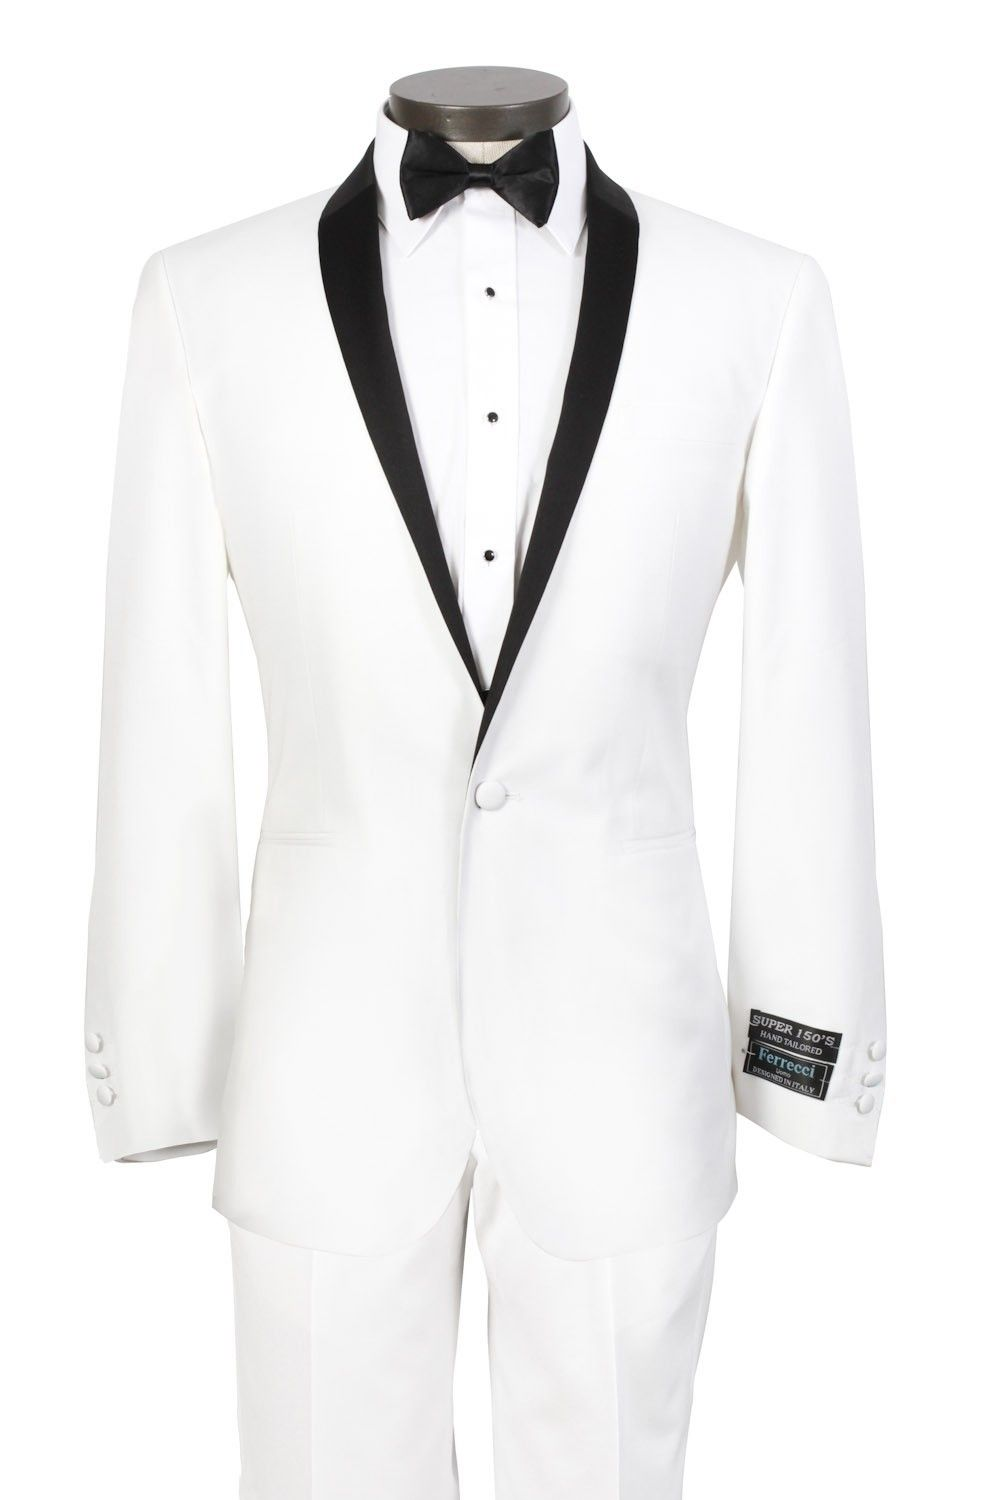 2013 Custom Made White Wedding Tuxedo For Men With Black Shawl Lapel And 1 Button Front